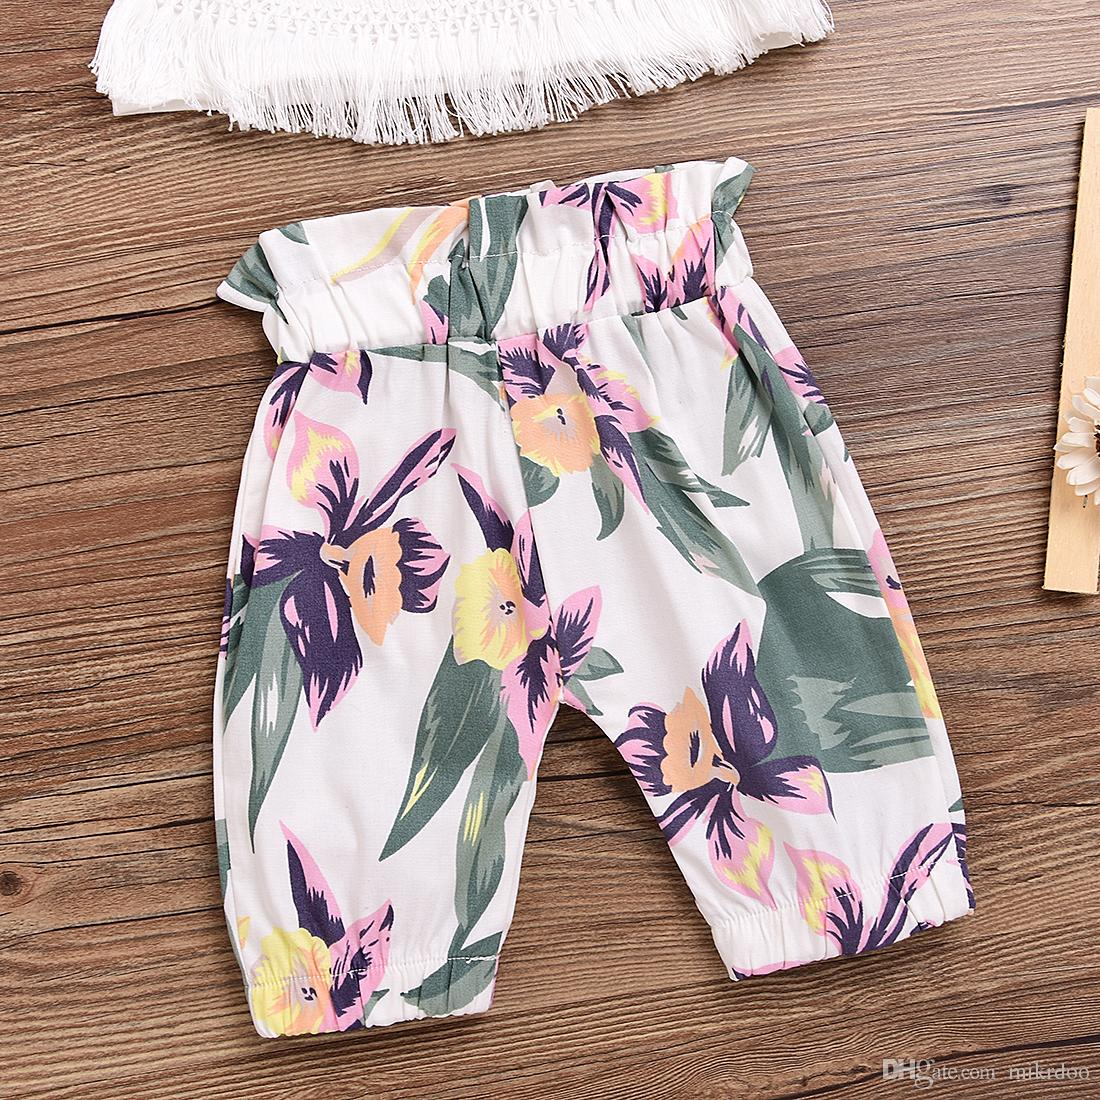 Mikrdoo Hot Sale Baby Suit Summer 2017 Cute Newborn Kids Girl Clothes Tassel Sleeveless White Tops Floral Pants Headband Outfit Top Set